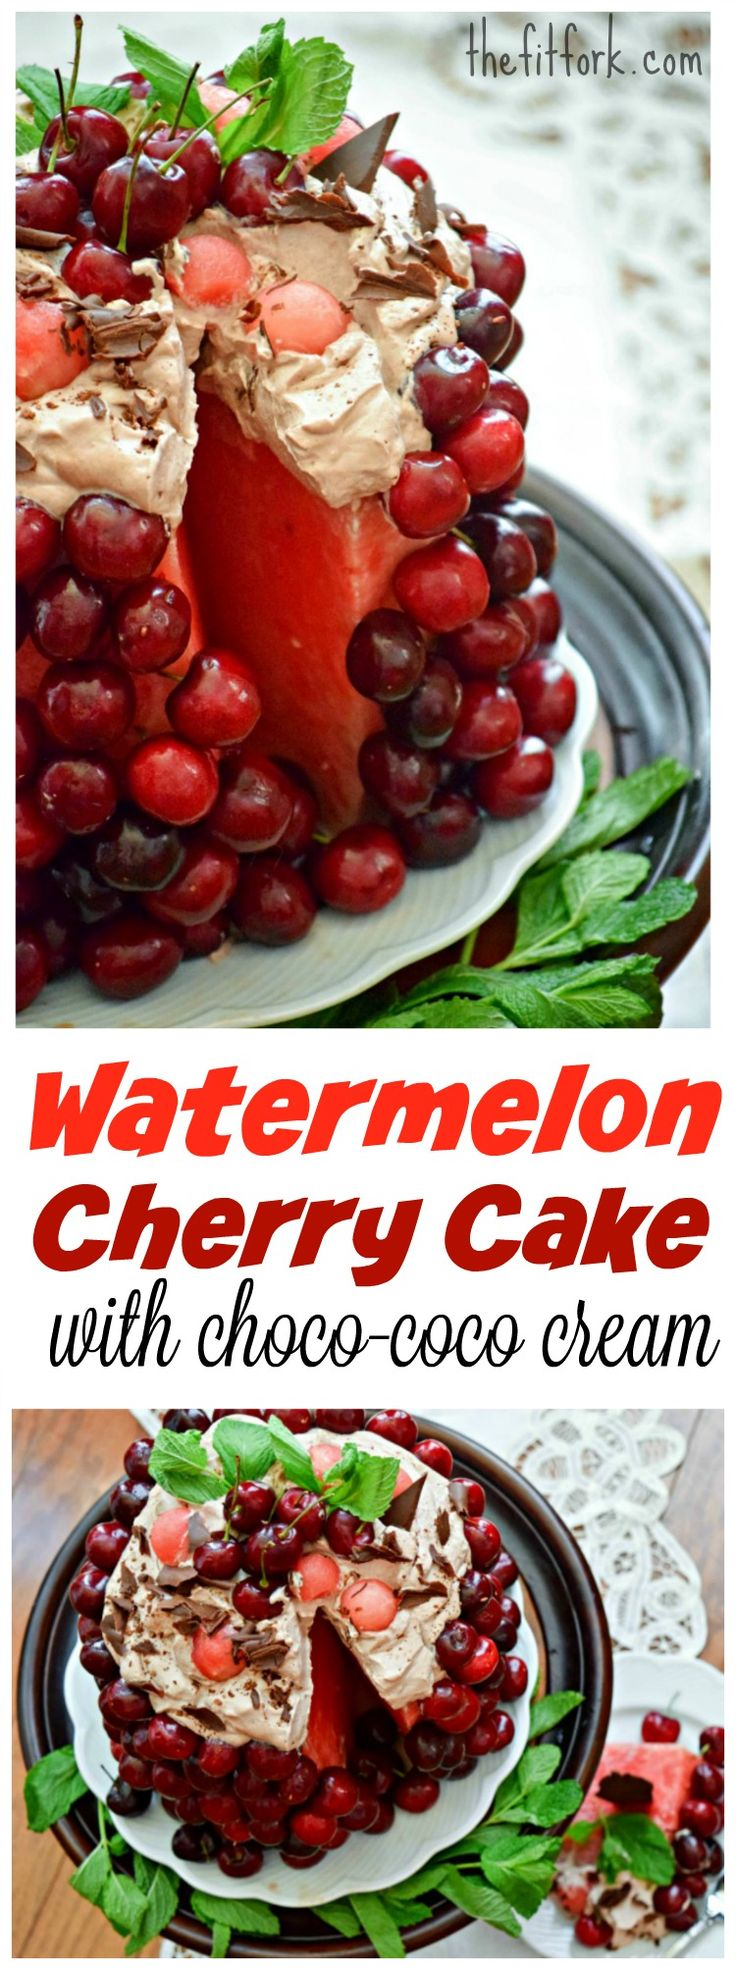 Watermelon Cherry Cake with Choco Coco Cream is a light summery dessert that is dairy-free, raw,  paleo and vegan.